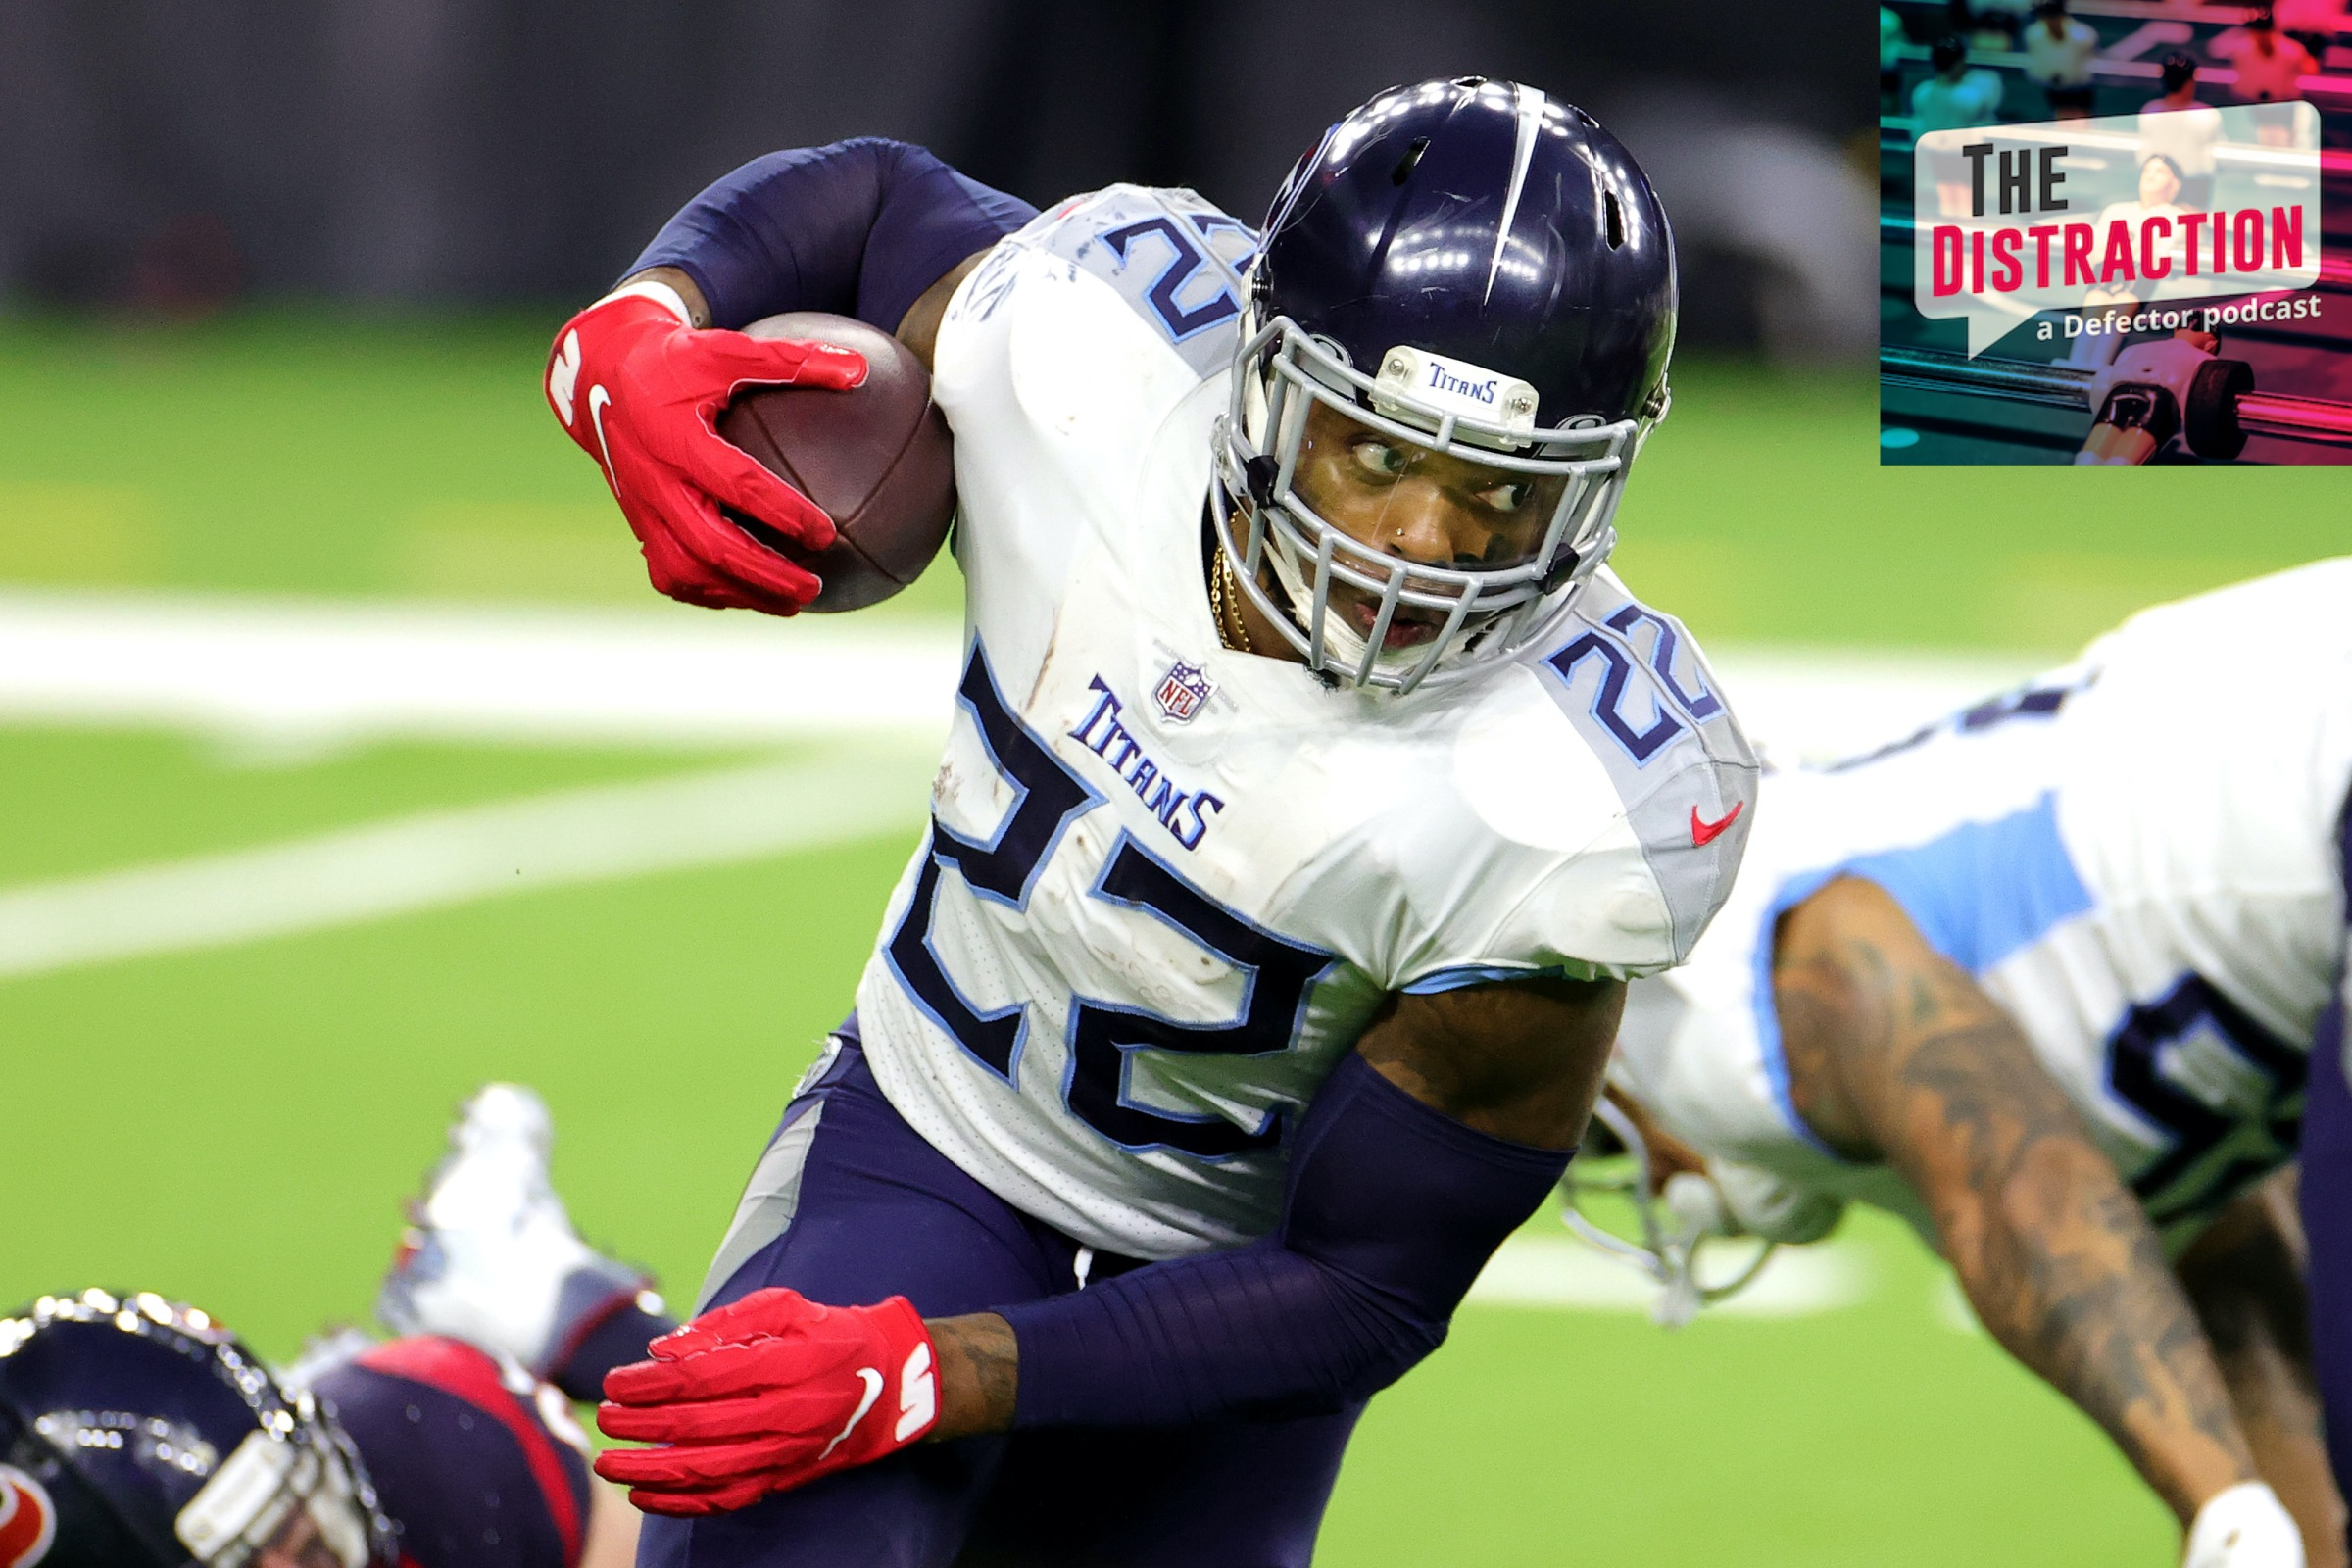 Tennessee Titans star Derrick Henry rushes against the Houston Texans at the end of the last NFL season.